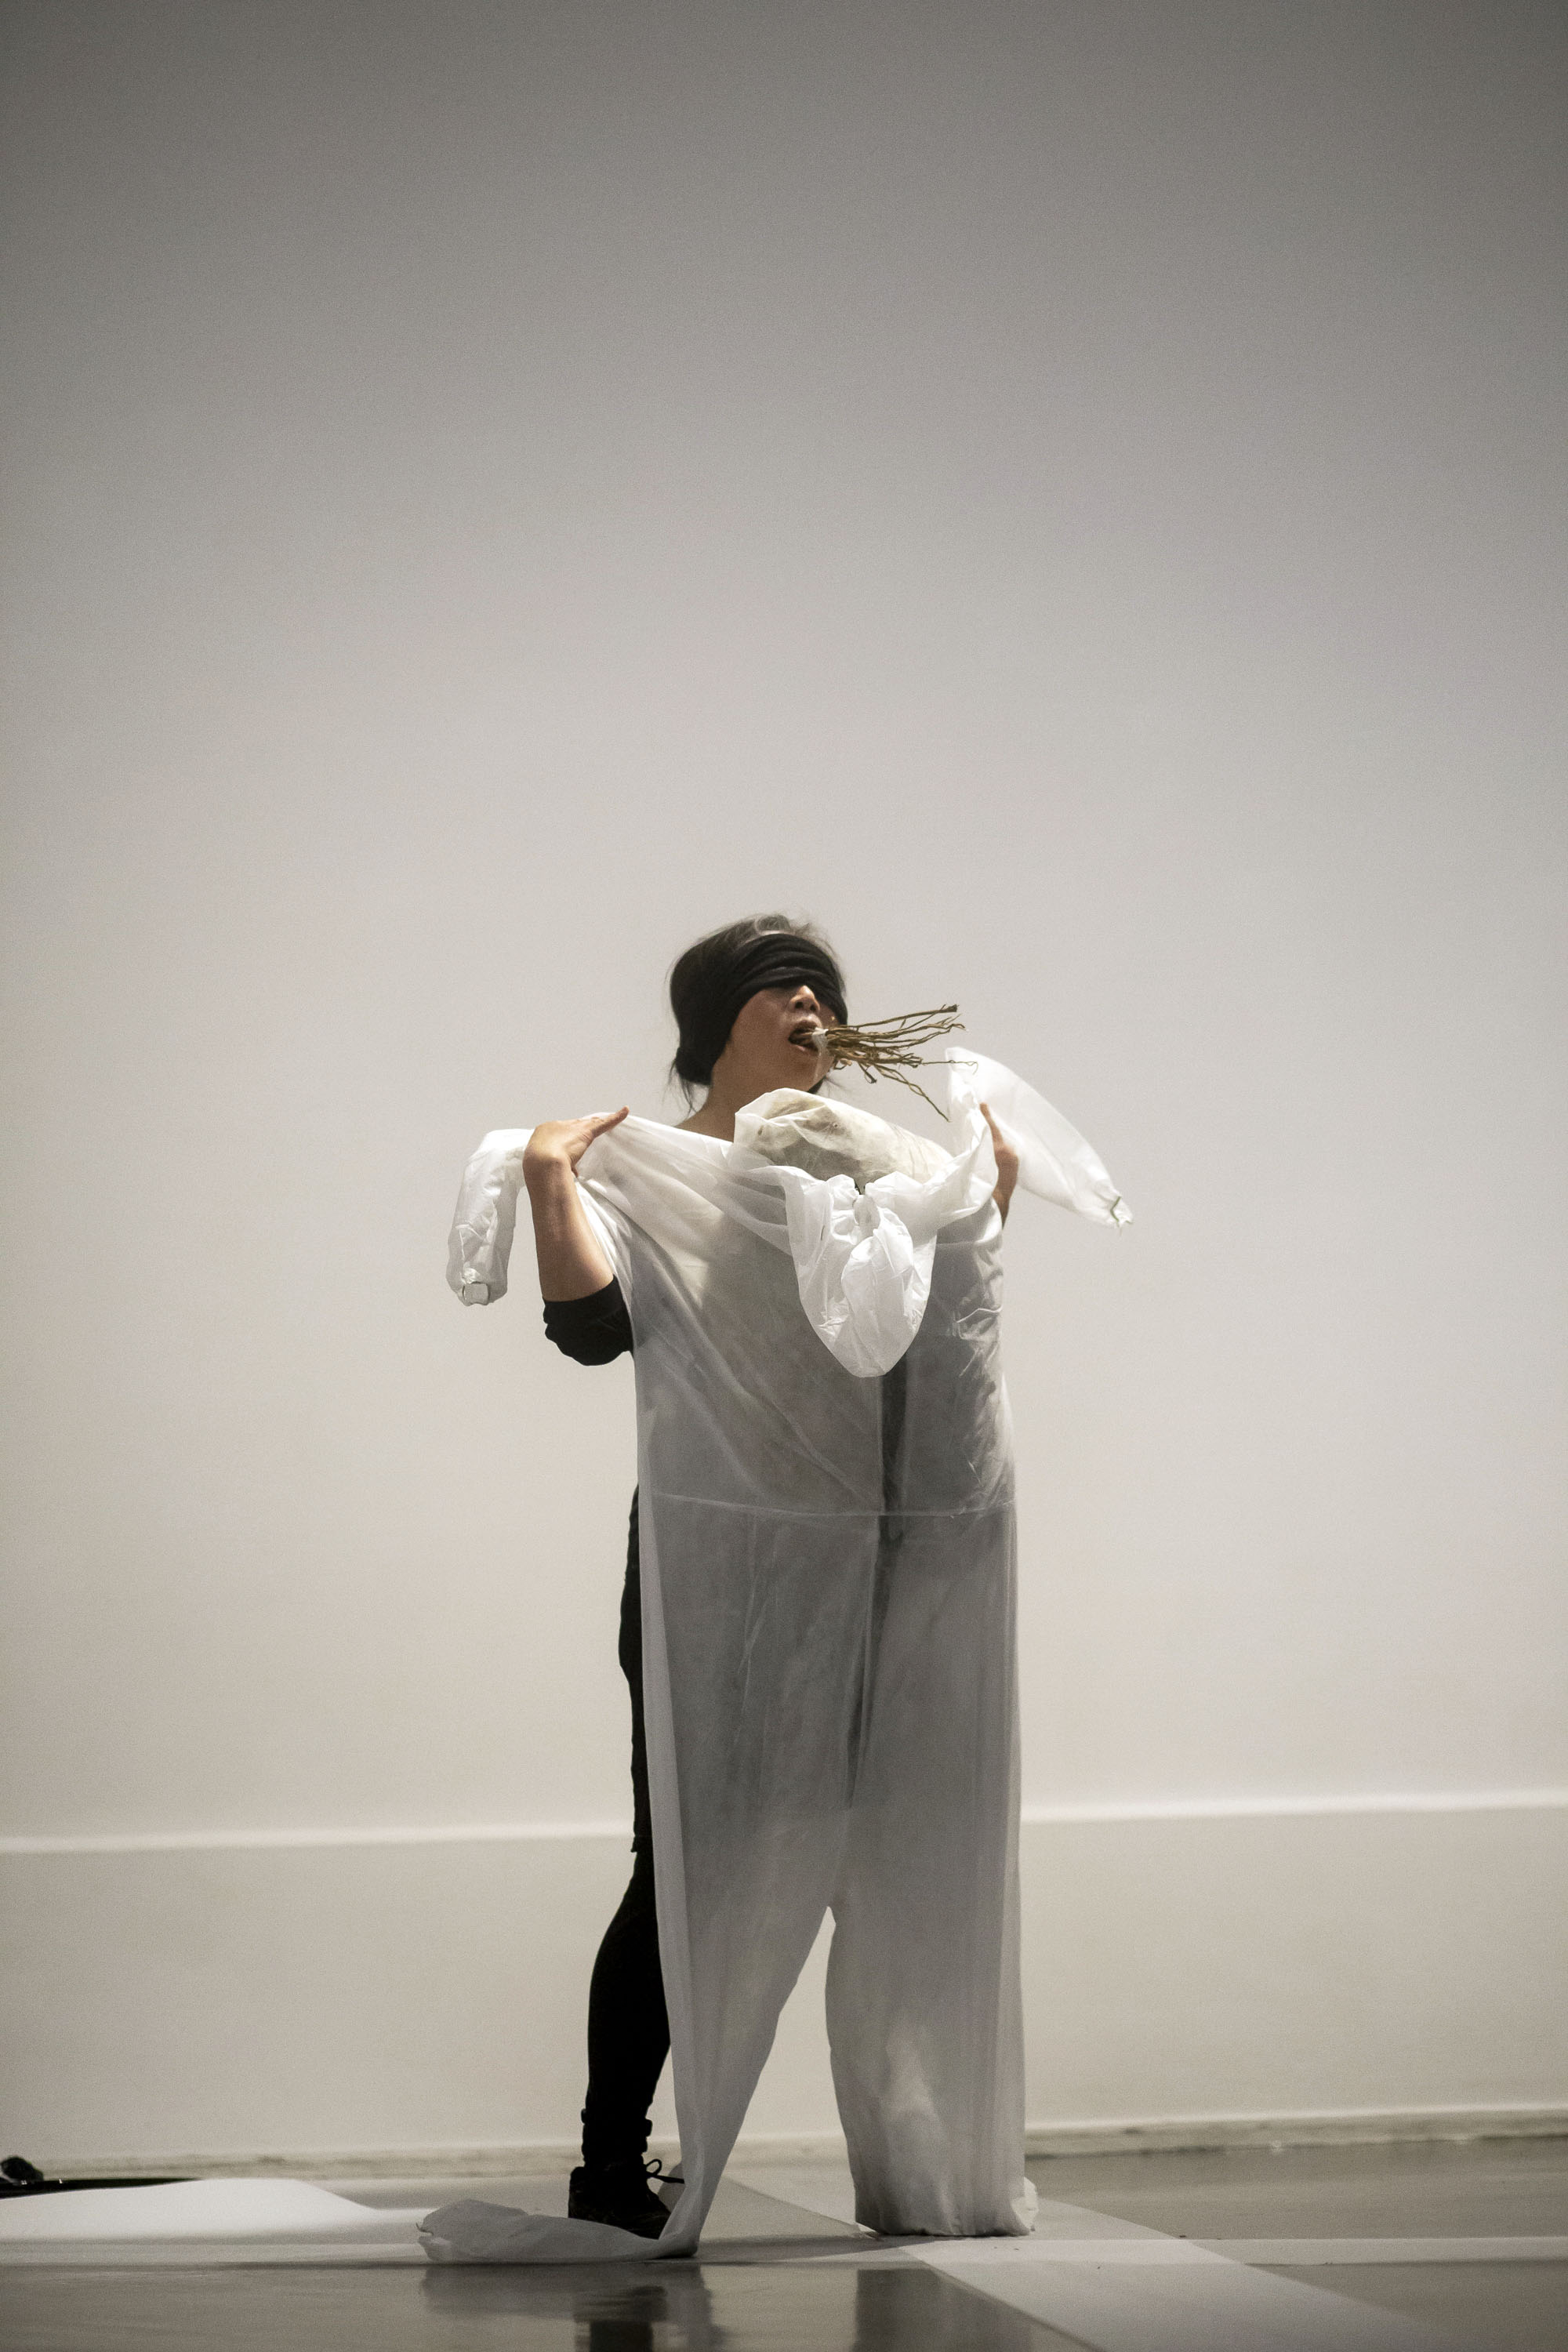 Water timing - M serie MIRAGE (水時 - 海市蜃樓) by Ting Li-Ping (丁麗萍). Photographer: Lisa Ziegler